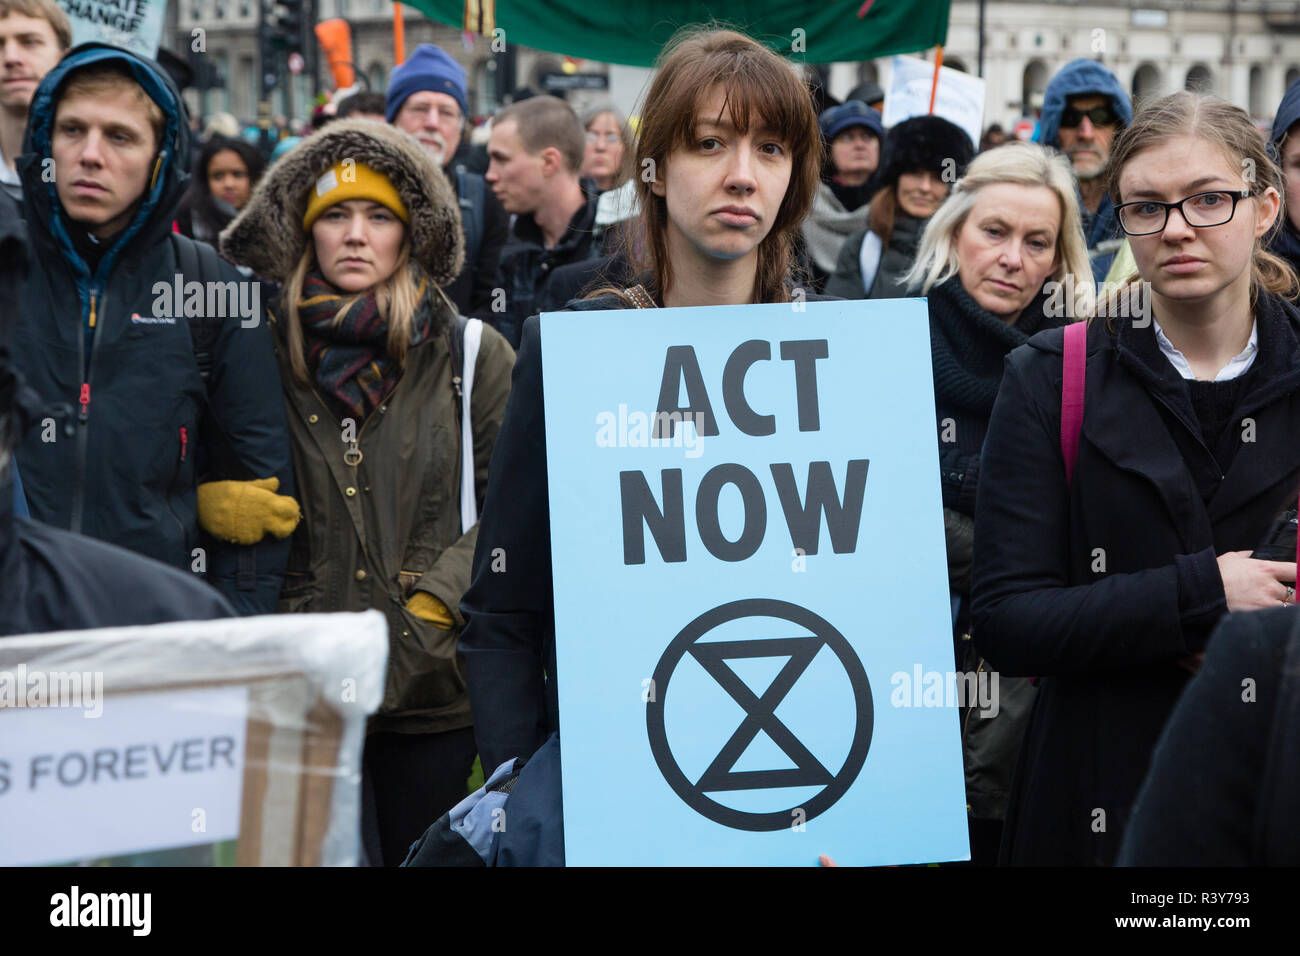 London UK 24th November 2018  Protesters carry signs during a climate change protest. Credit: Thabo Jaiyesimi/Alamy Live News Stock Photo